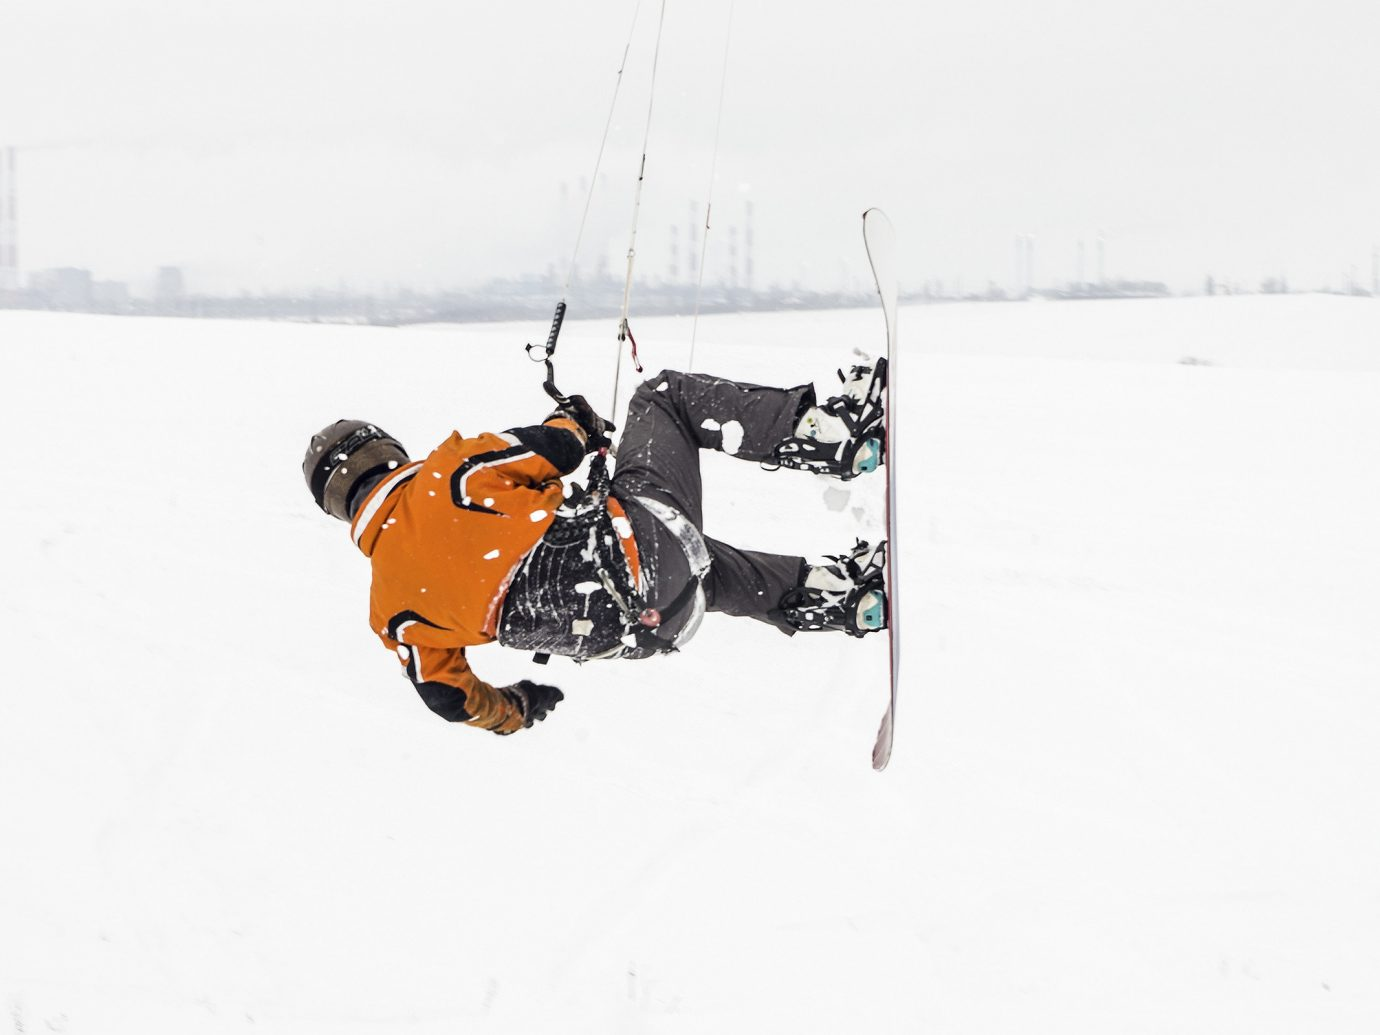 Offbeat outdoor snow sky person man snowboarding skiing sports winter sport board transport slope freestyle skiing hill downhill Ski ski cross ski tow sports equipment ski equipment individual sports air snowboard